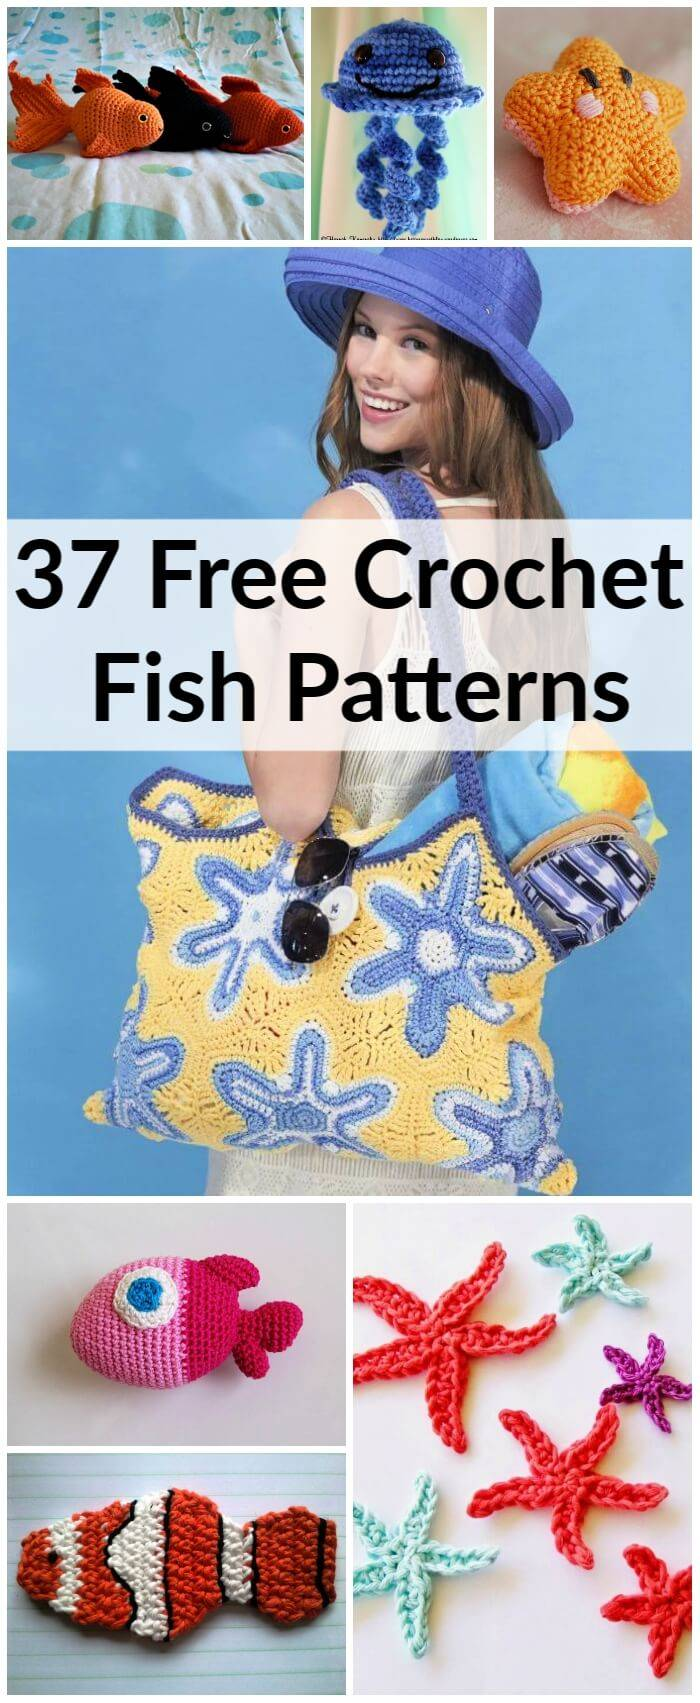 37 Free Crochet Fish Patterns To Make Your Own, Free Crochet Patterns, Crochet Patterns, DIY Crafts, Easy Craft Ideas